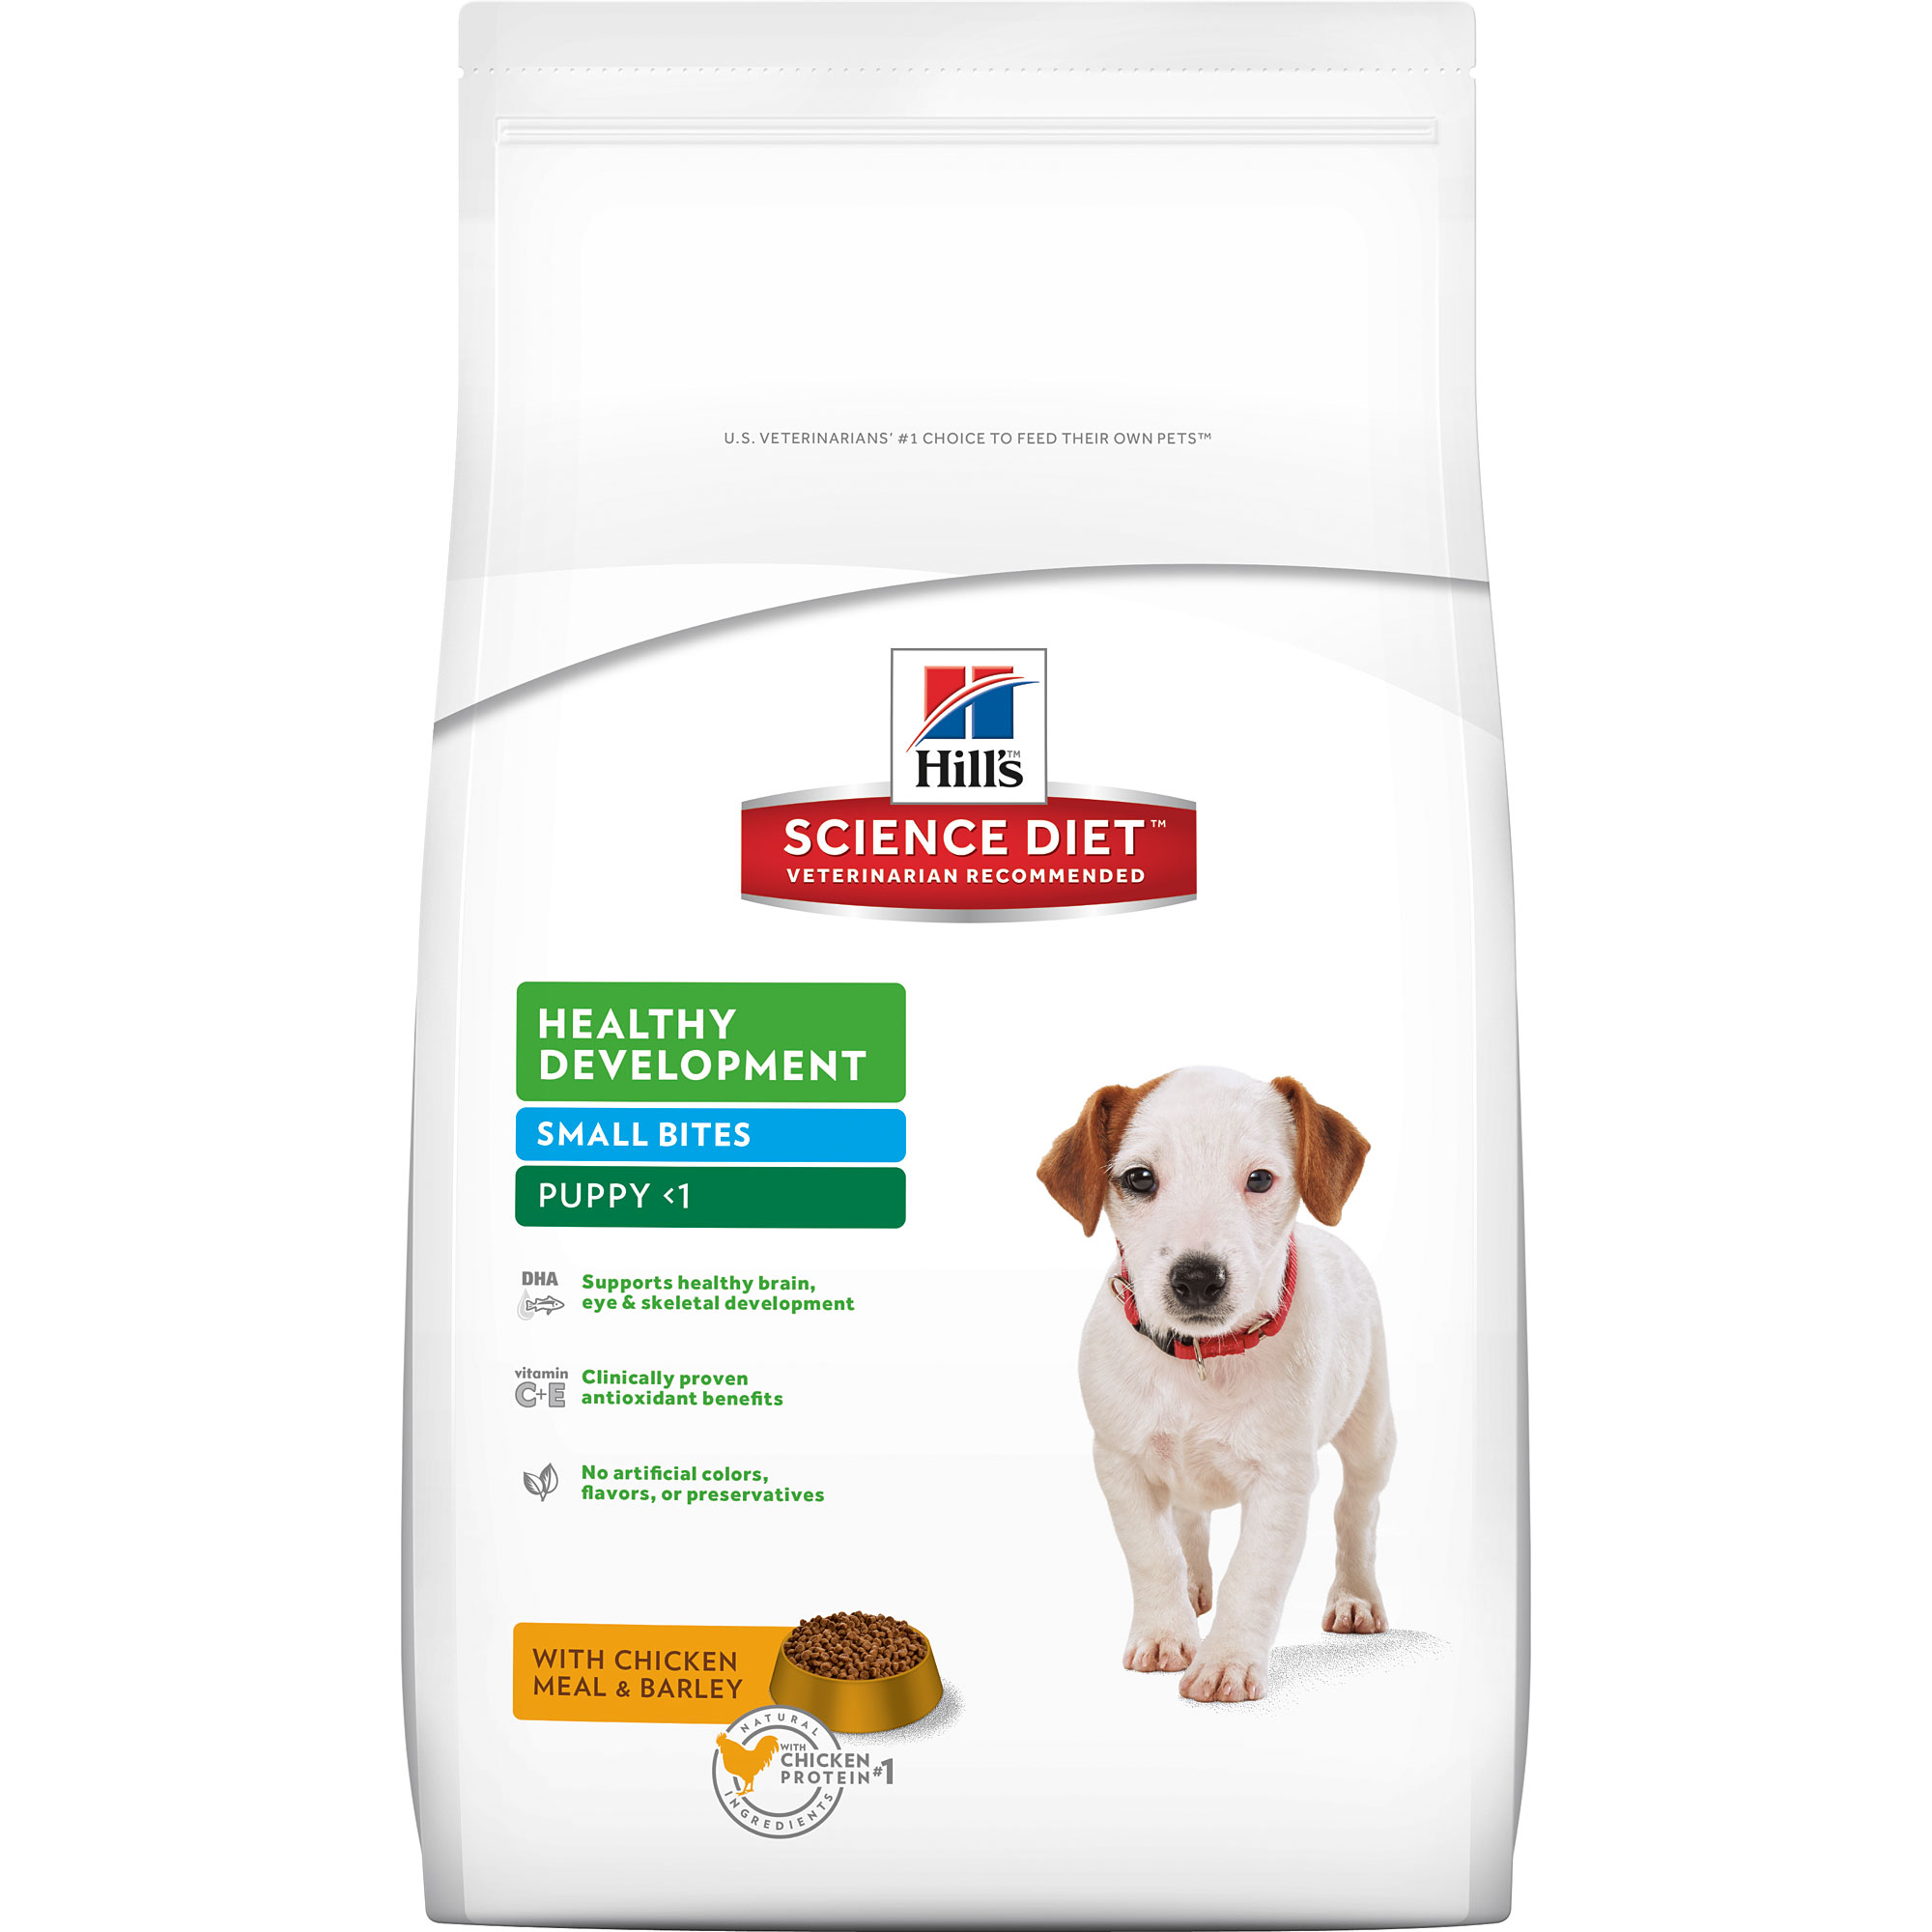 Hill's Science Diet Puppy Healthy Development Small Bites with Chicken Meal & Barley Dry Dog Food, 15.5 lb bag